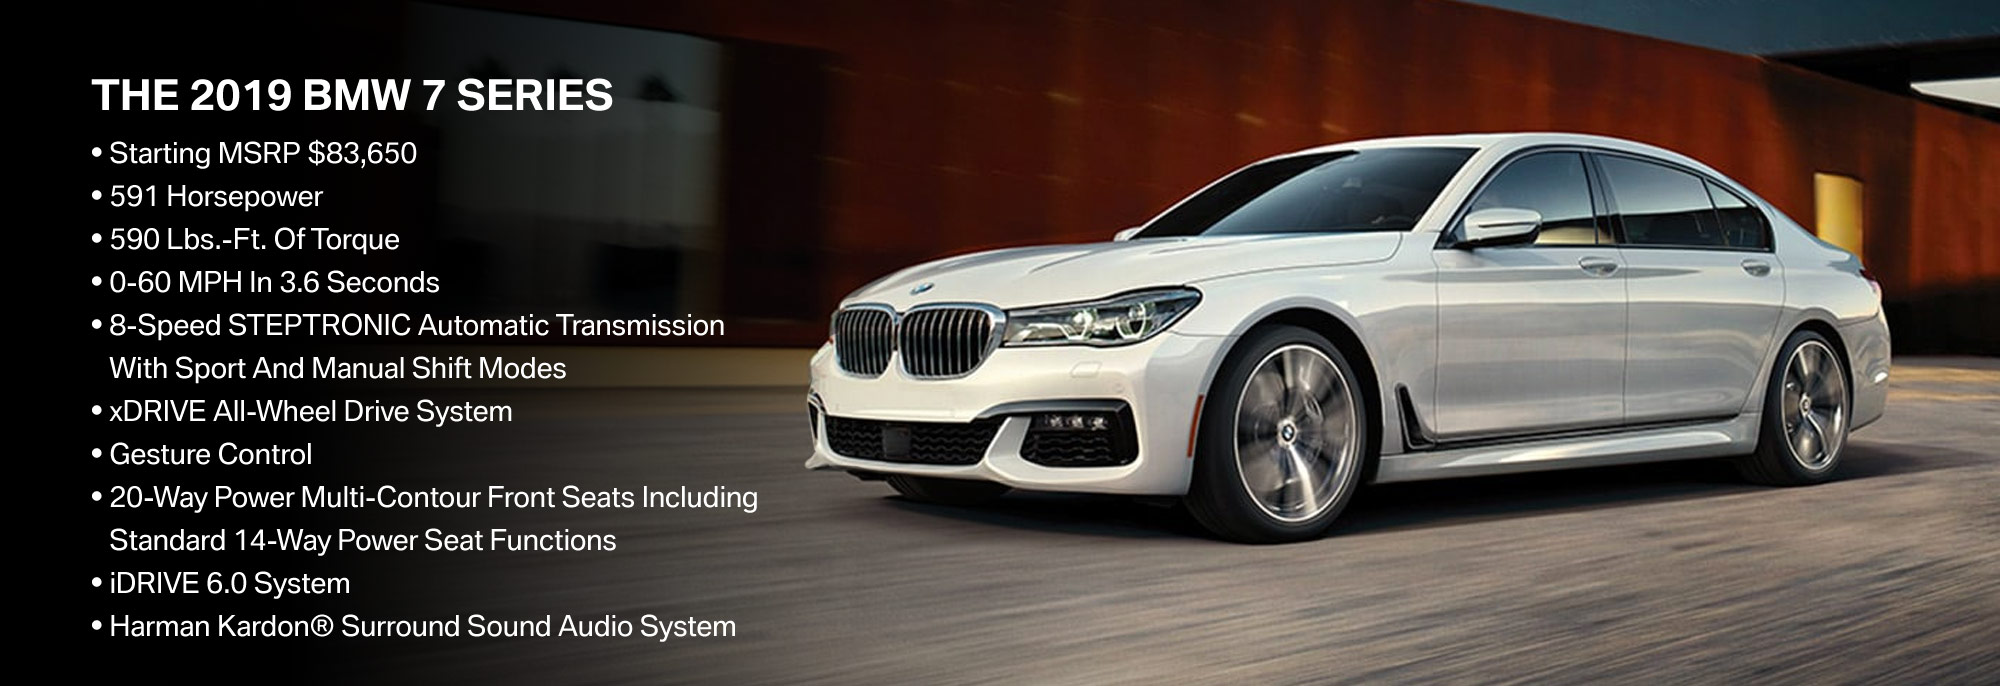 New 2019 BMW 7 Series Offer